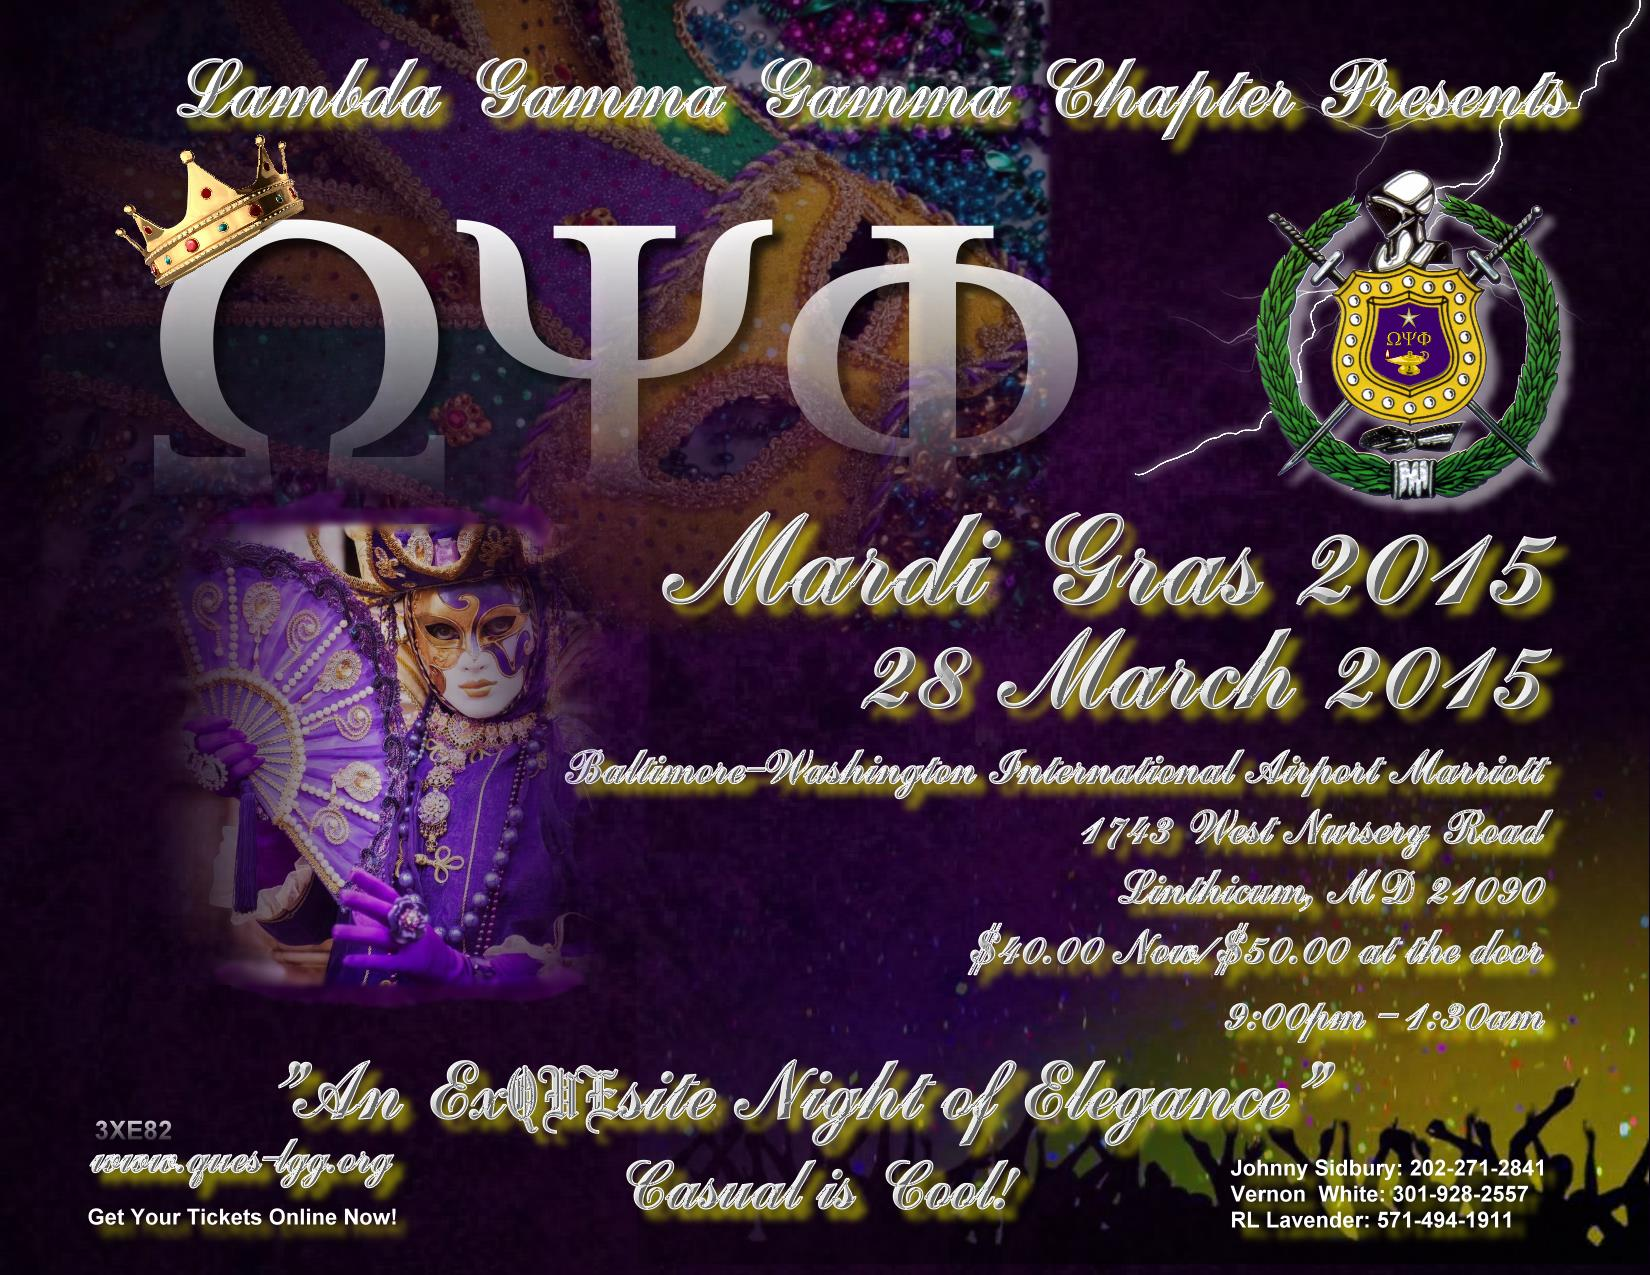 Mardi Gras 2015 Click here for details!